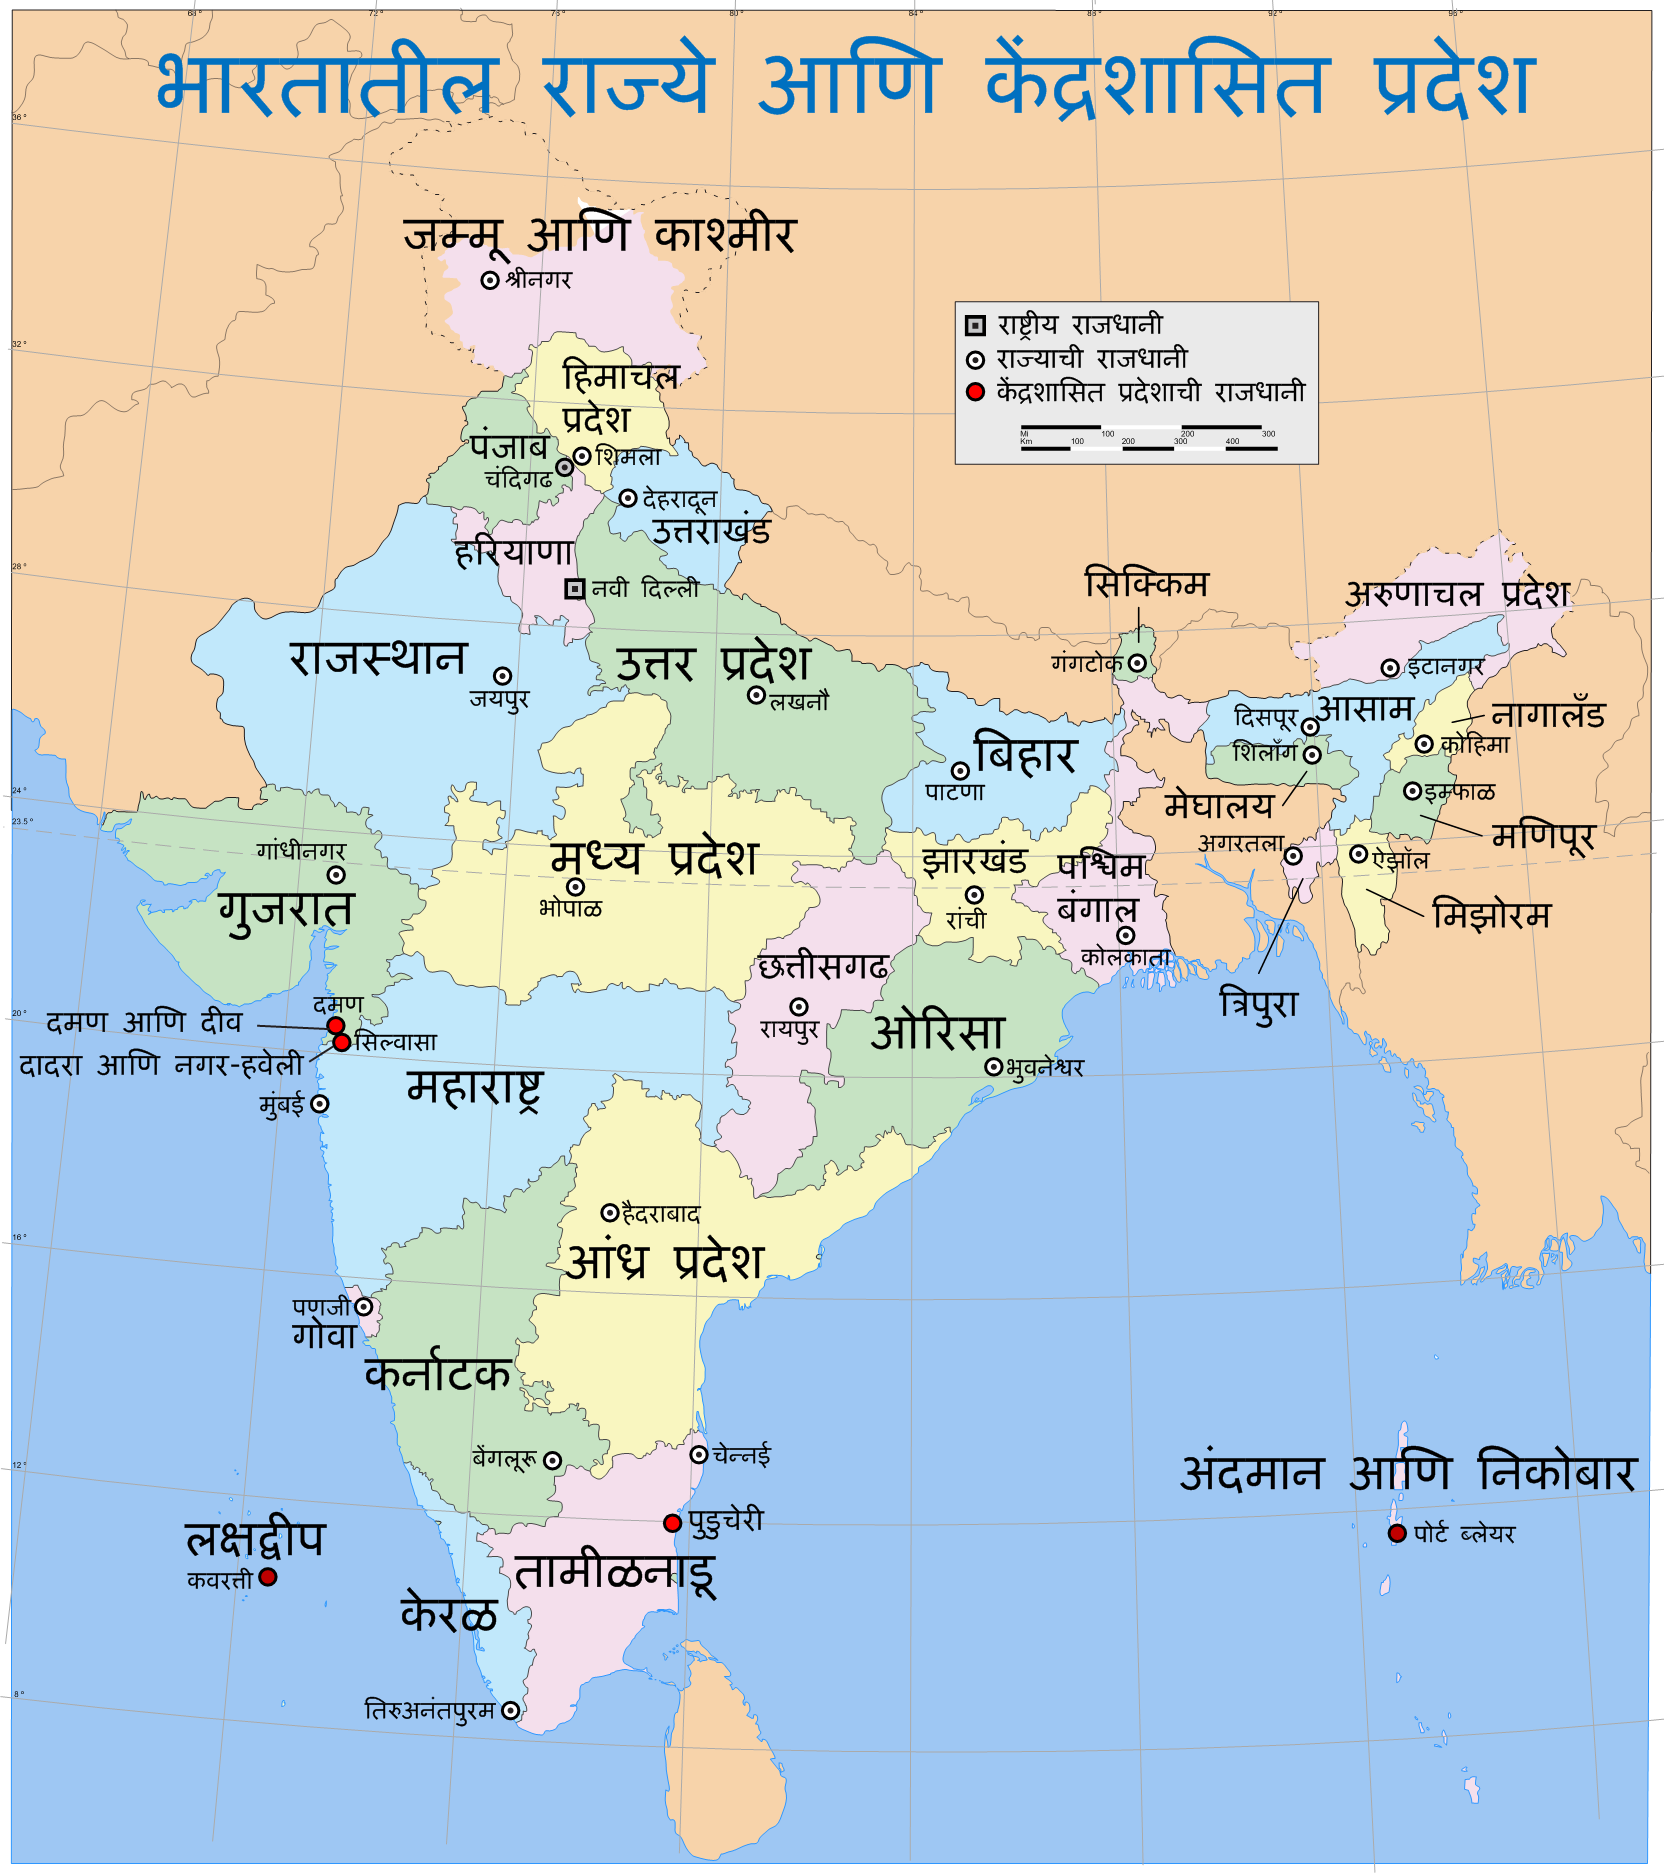 India Map With All States.File India States And Union Territories Map Mr Png Wikimedia Commons